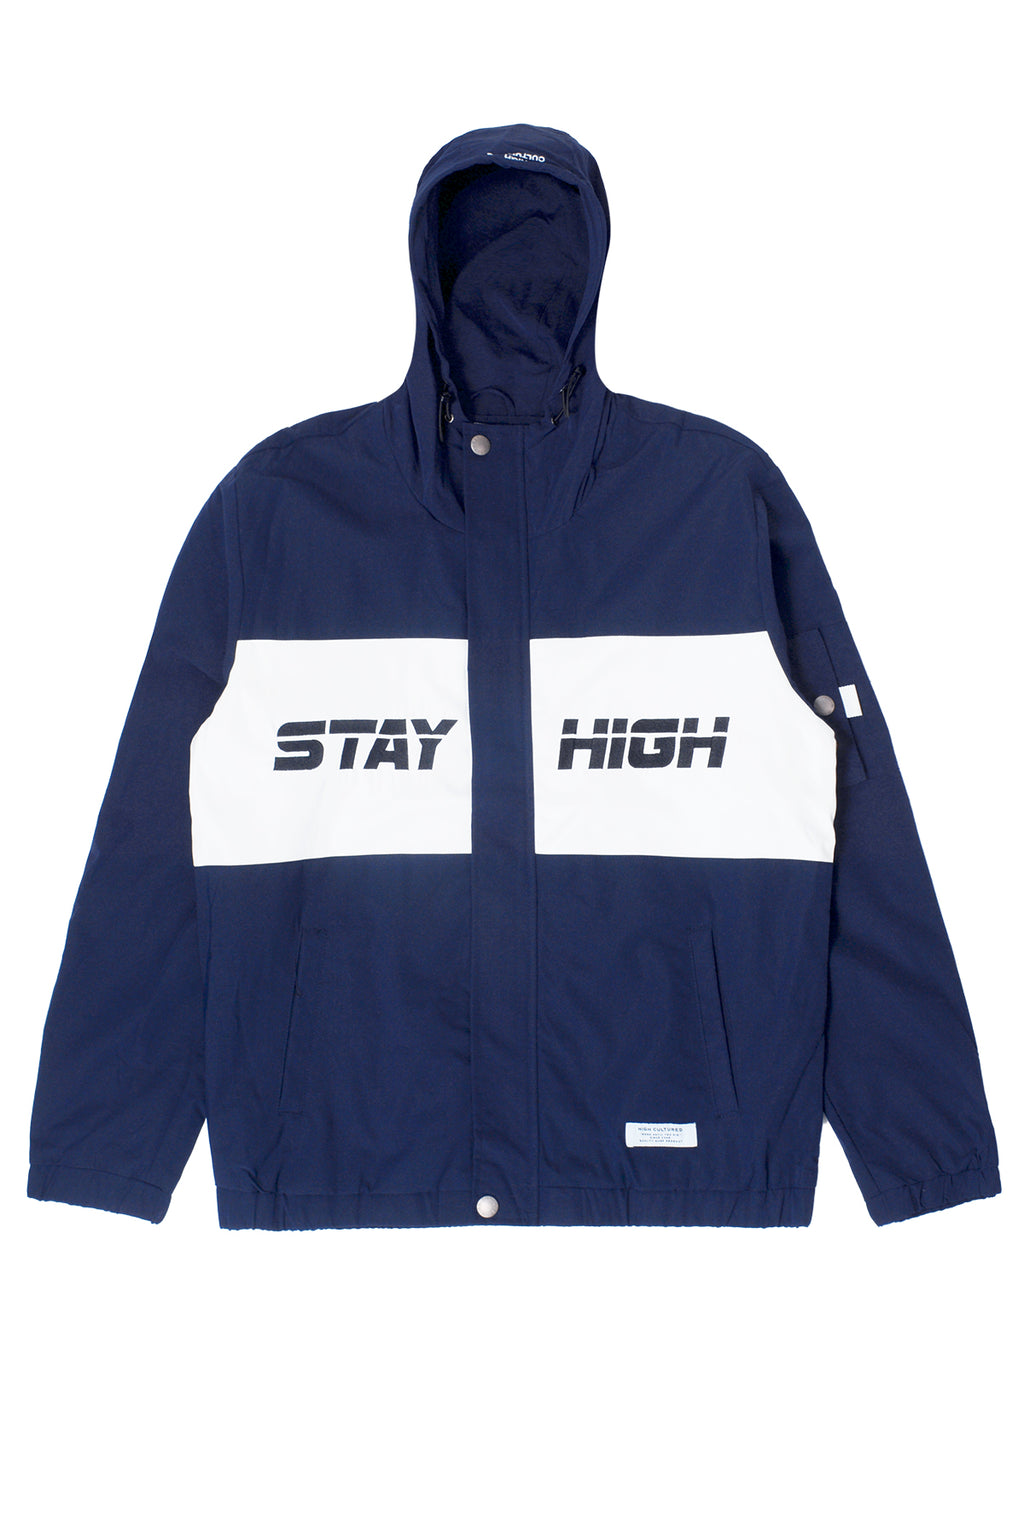 """STAY HIGH"" ATHLETICS HOODED JACKET 